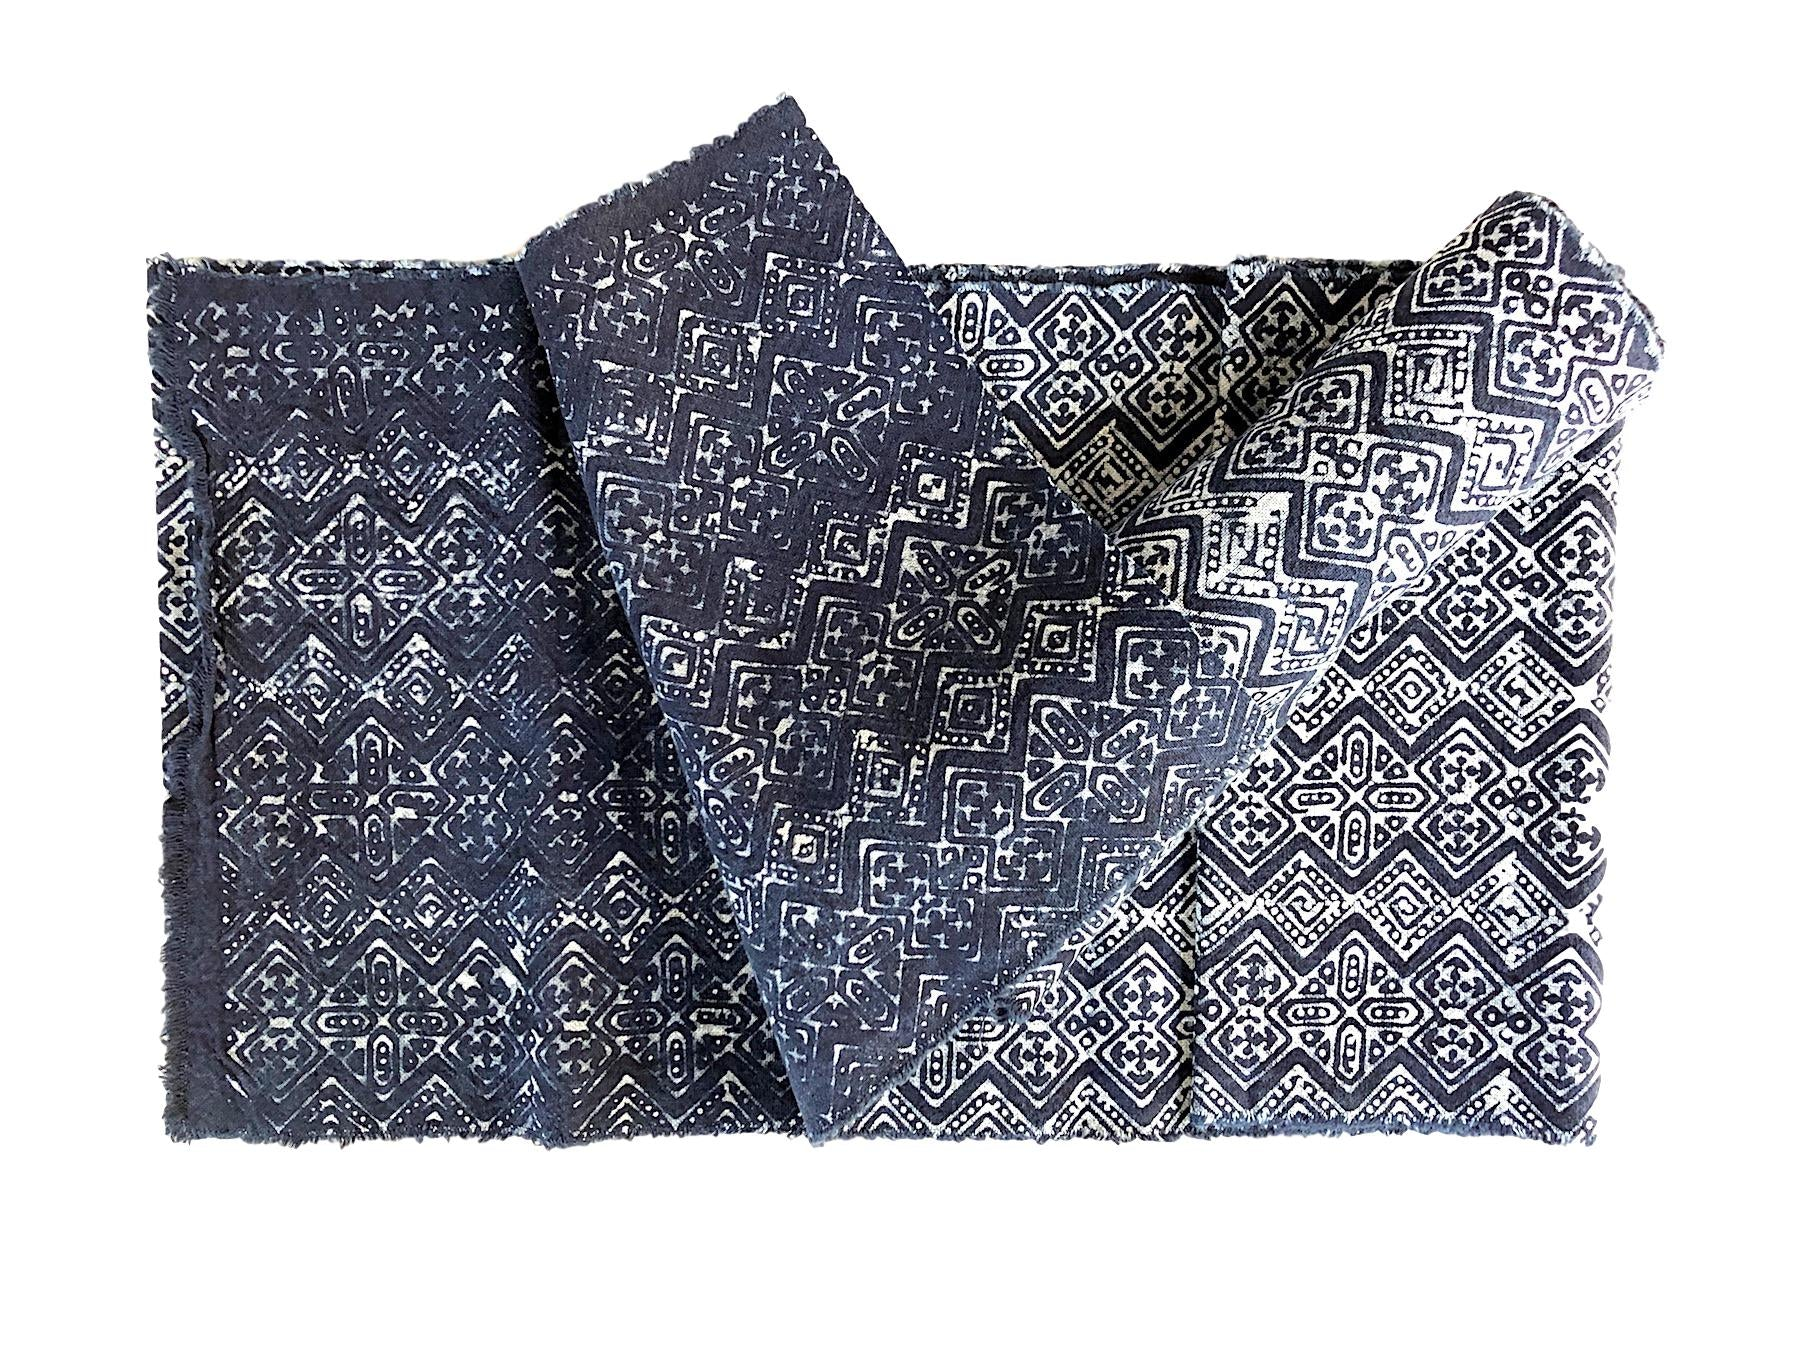 Hmong indigo table runner or decor fabric 2.5mt - Pallu Design